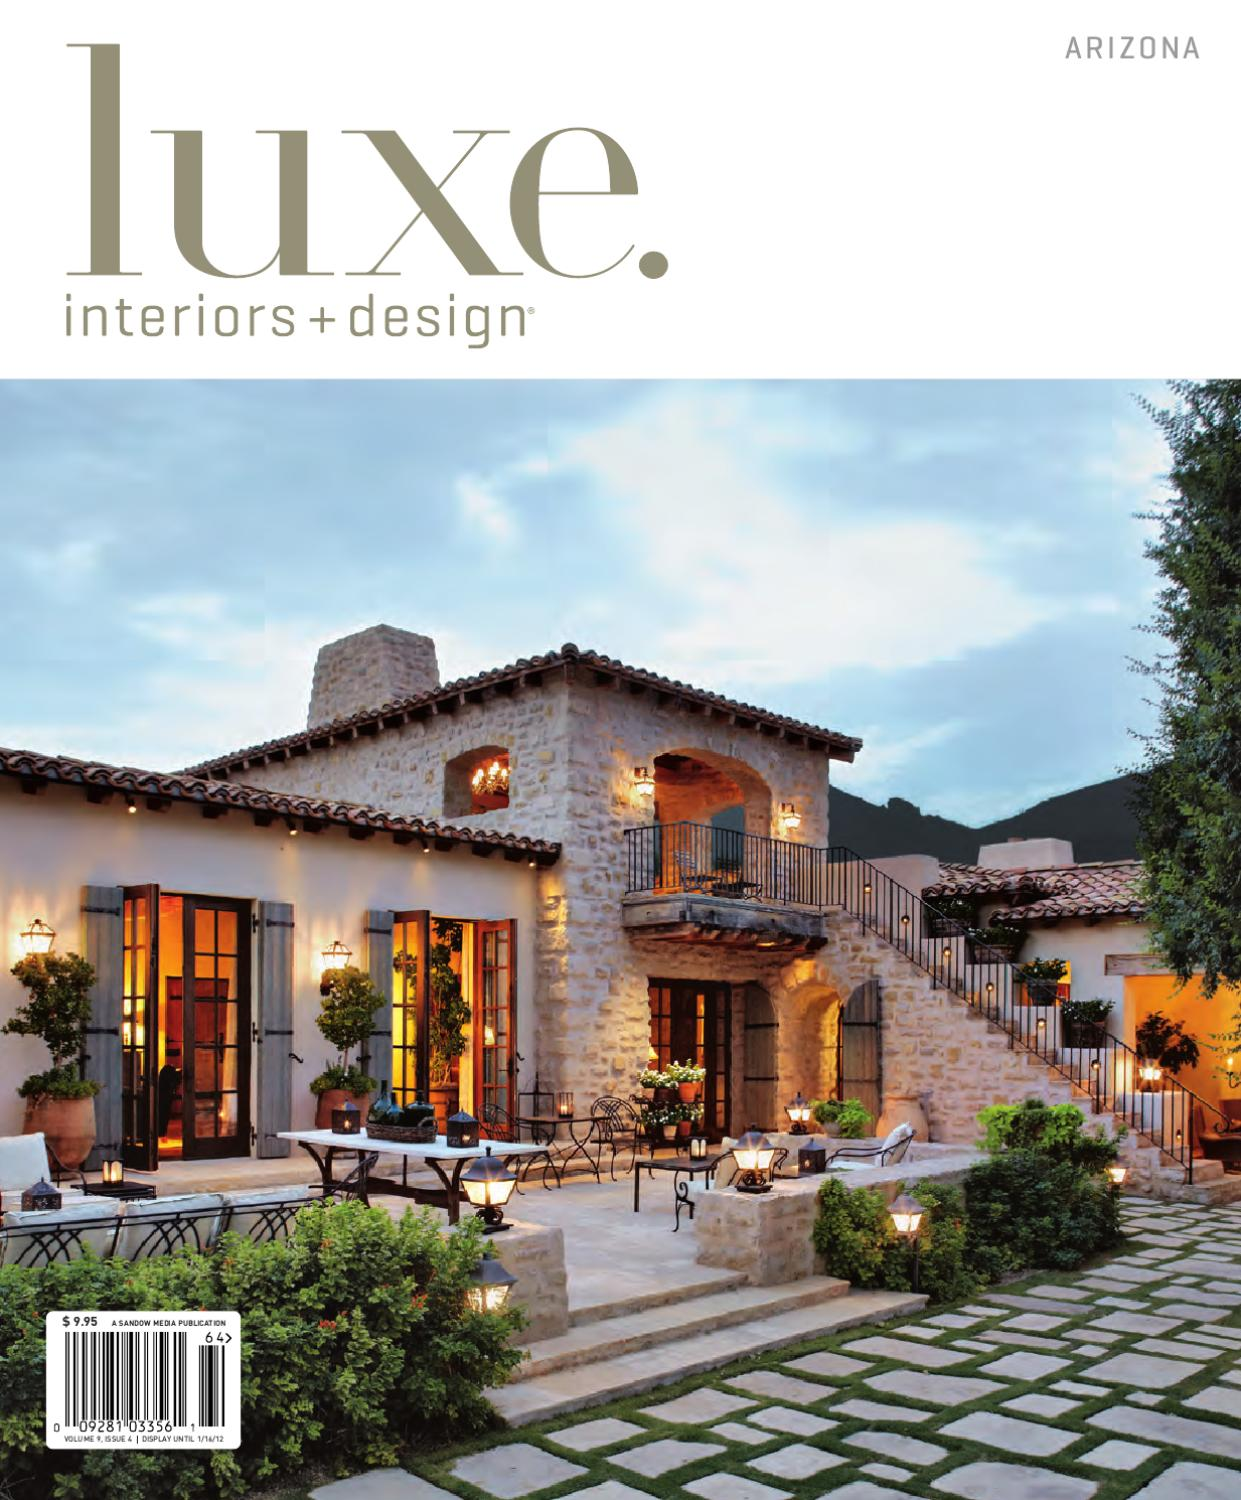 Luxe interior design arzona 13 by sandow media issuu for Luxe furniture and design